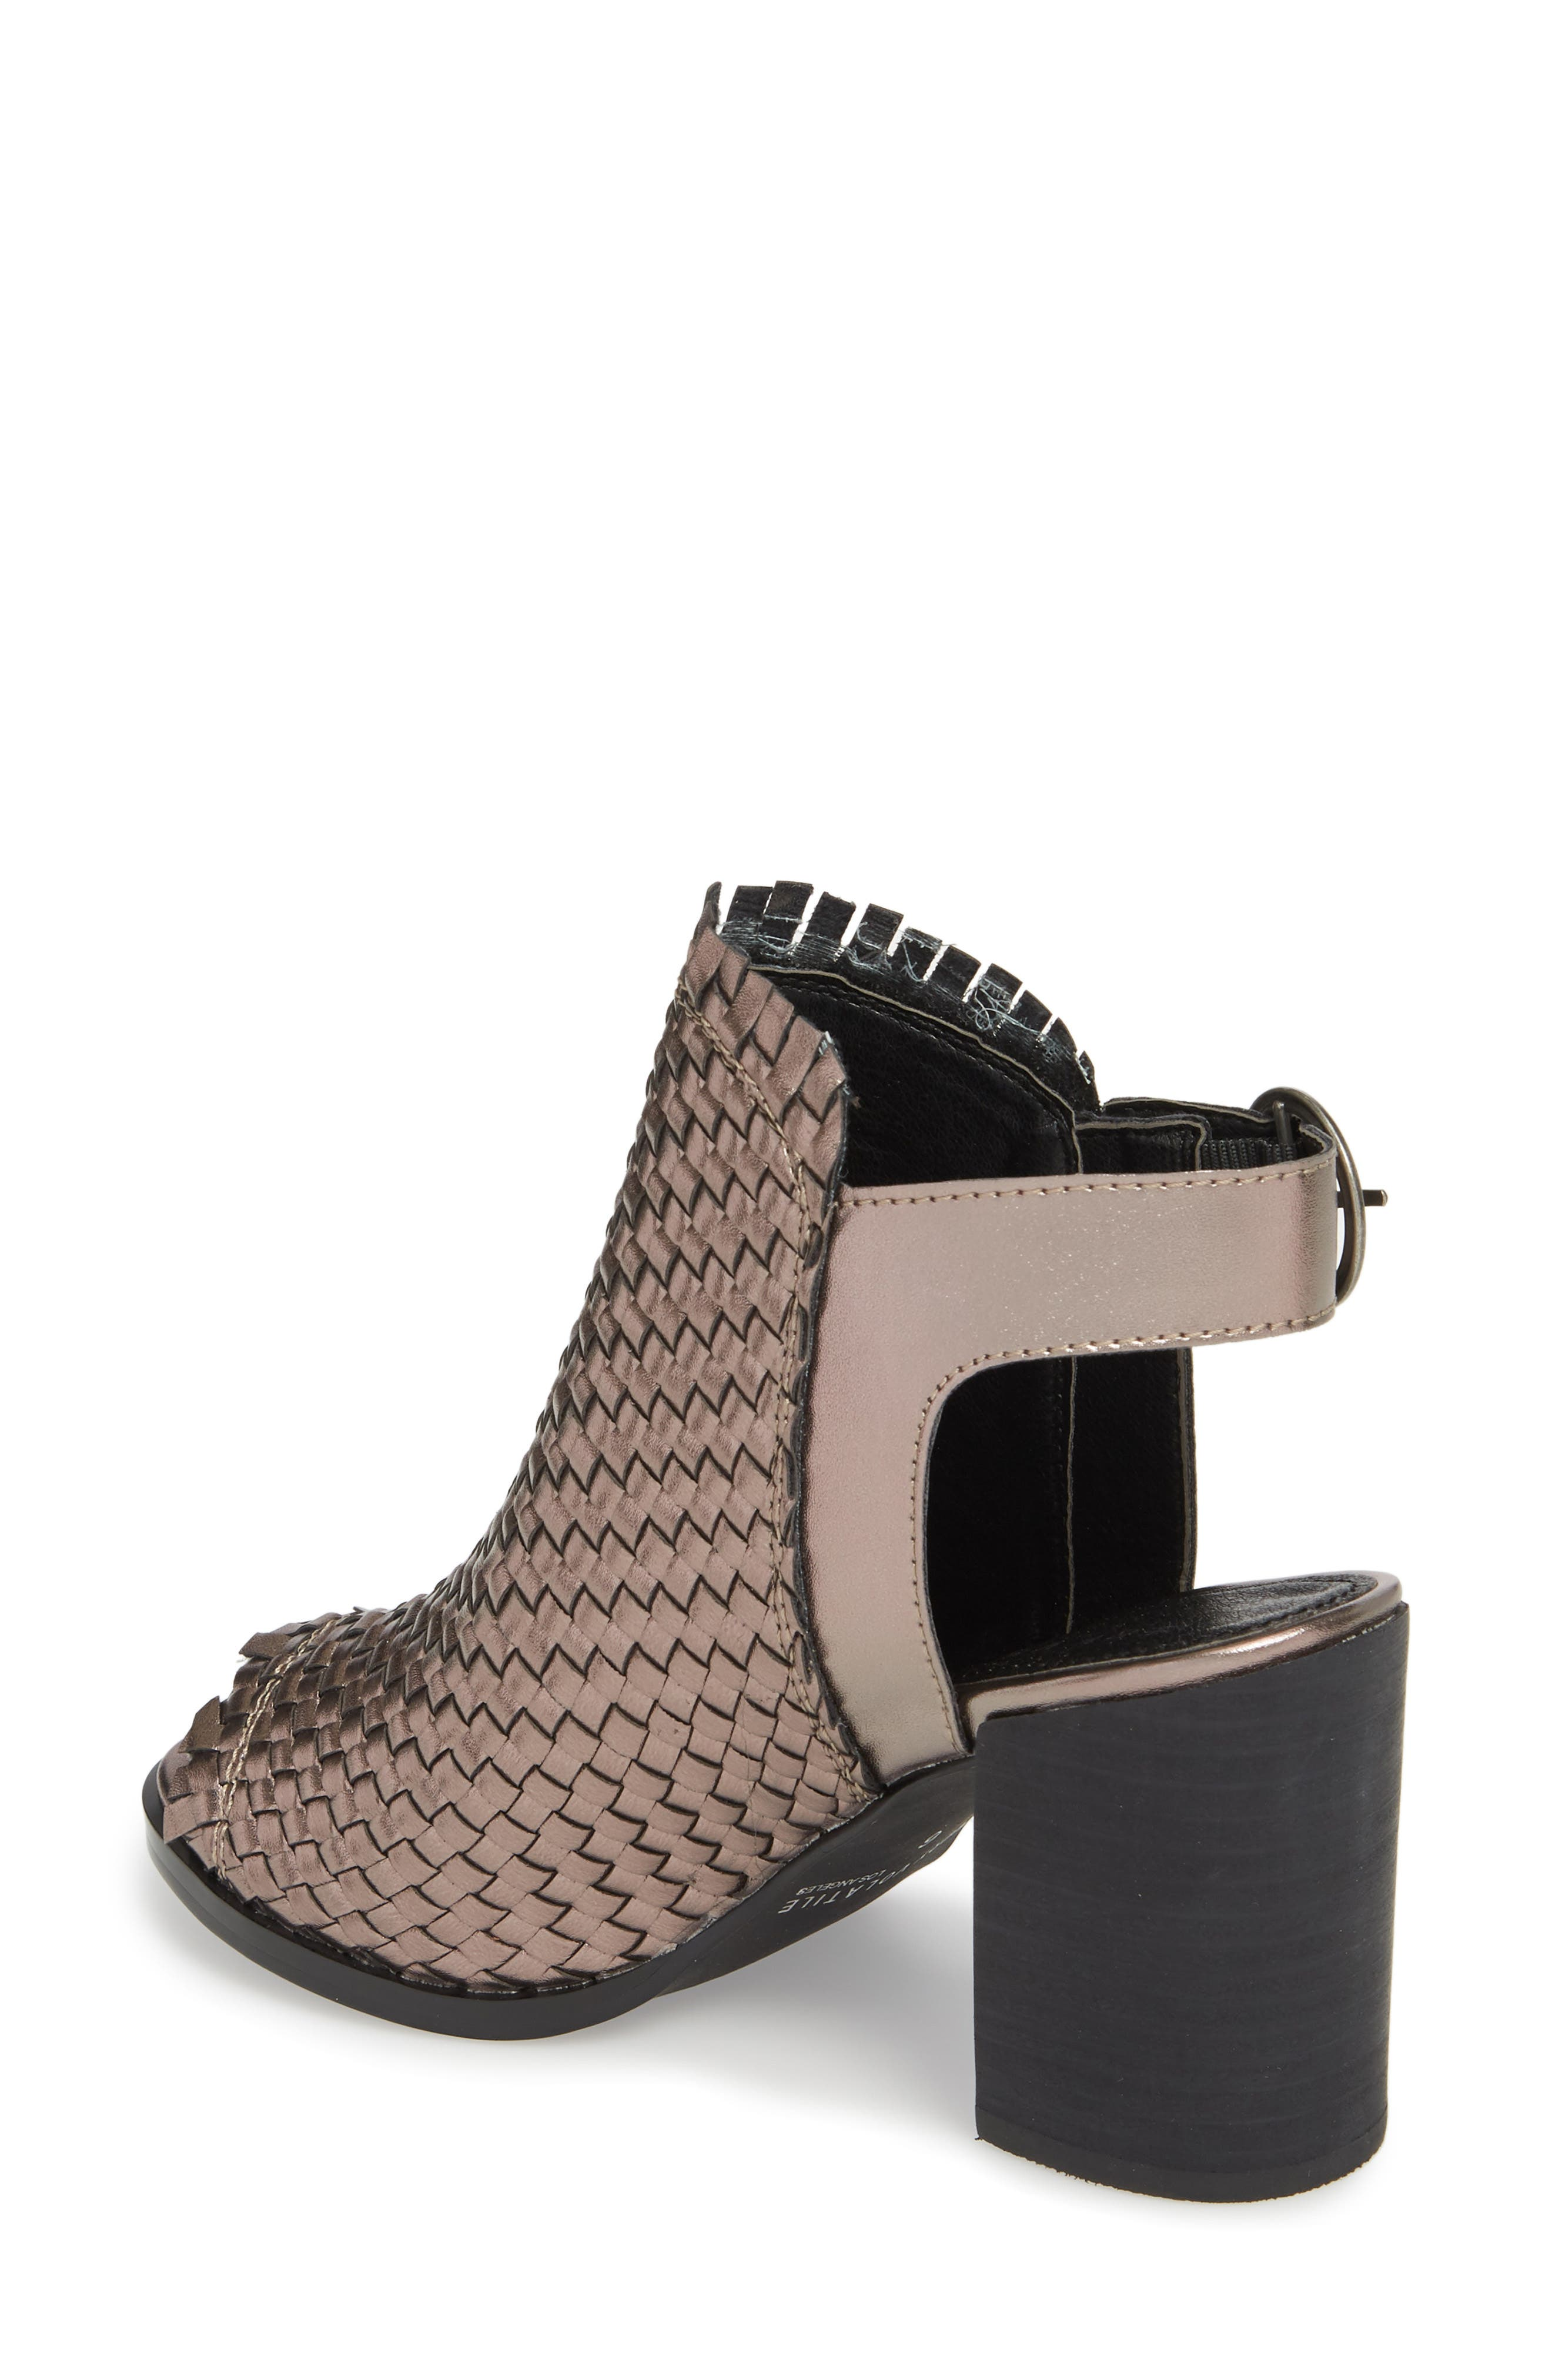 Starla Woven Sandal,                             Alternate thumbnail 2, color,                             PEWTER